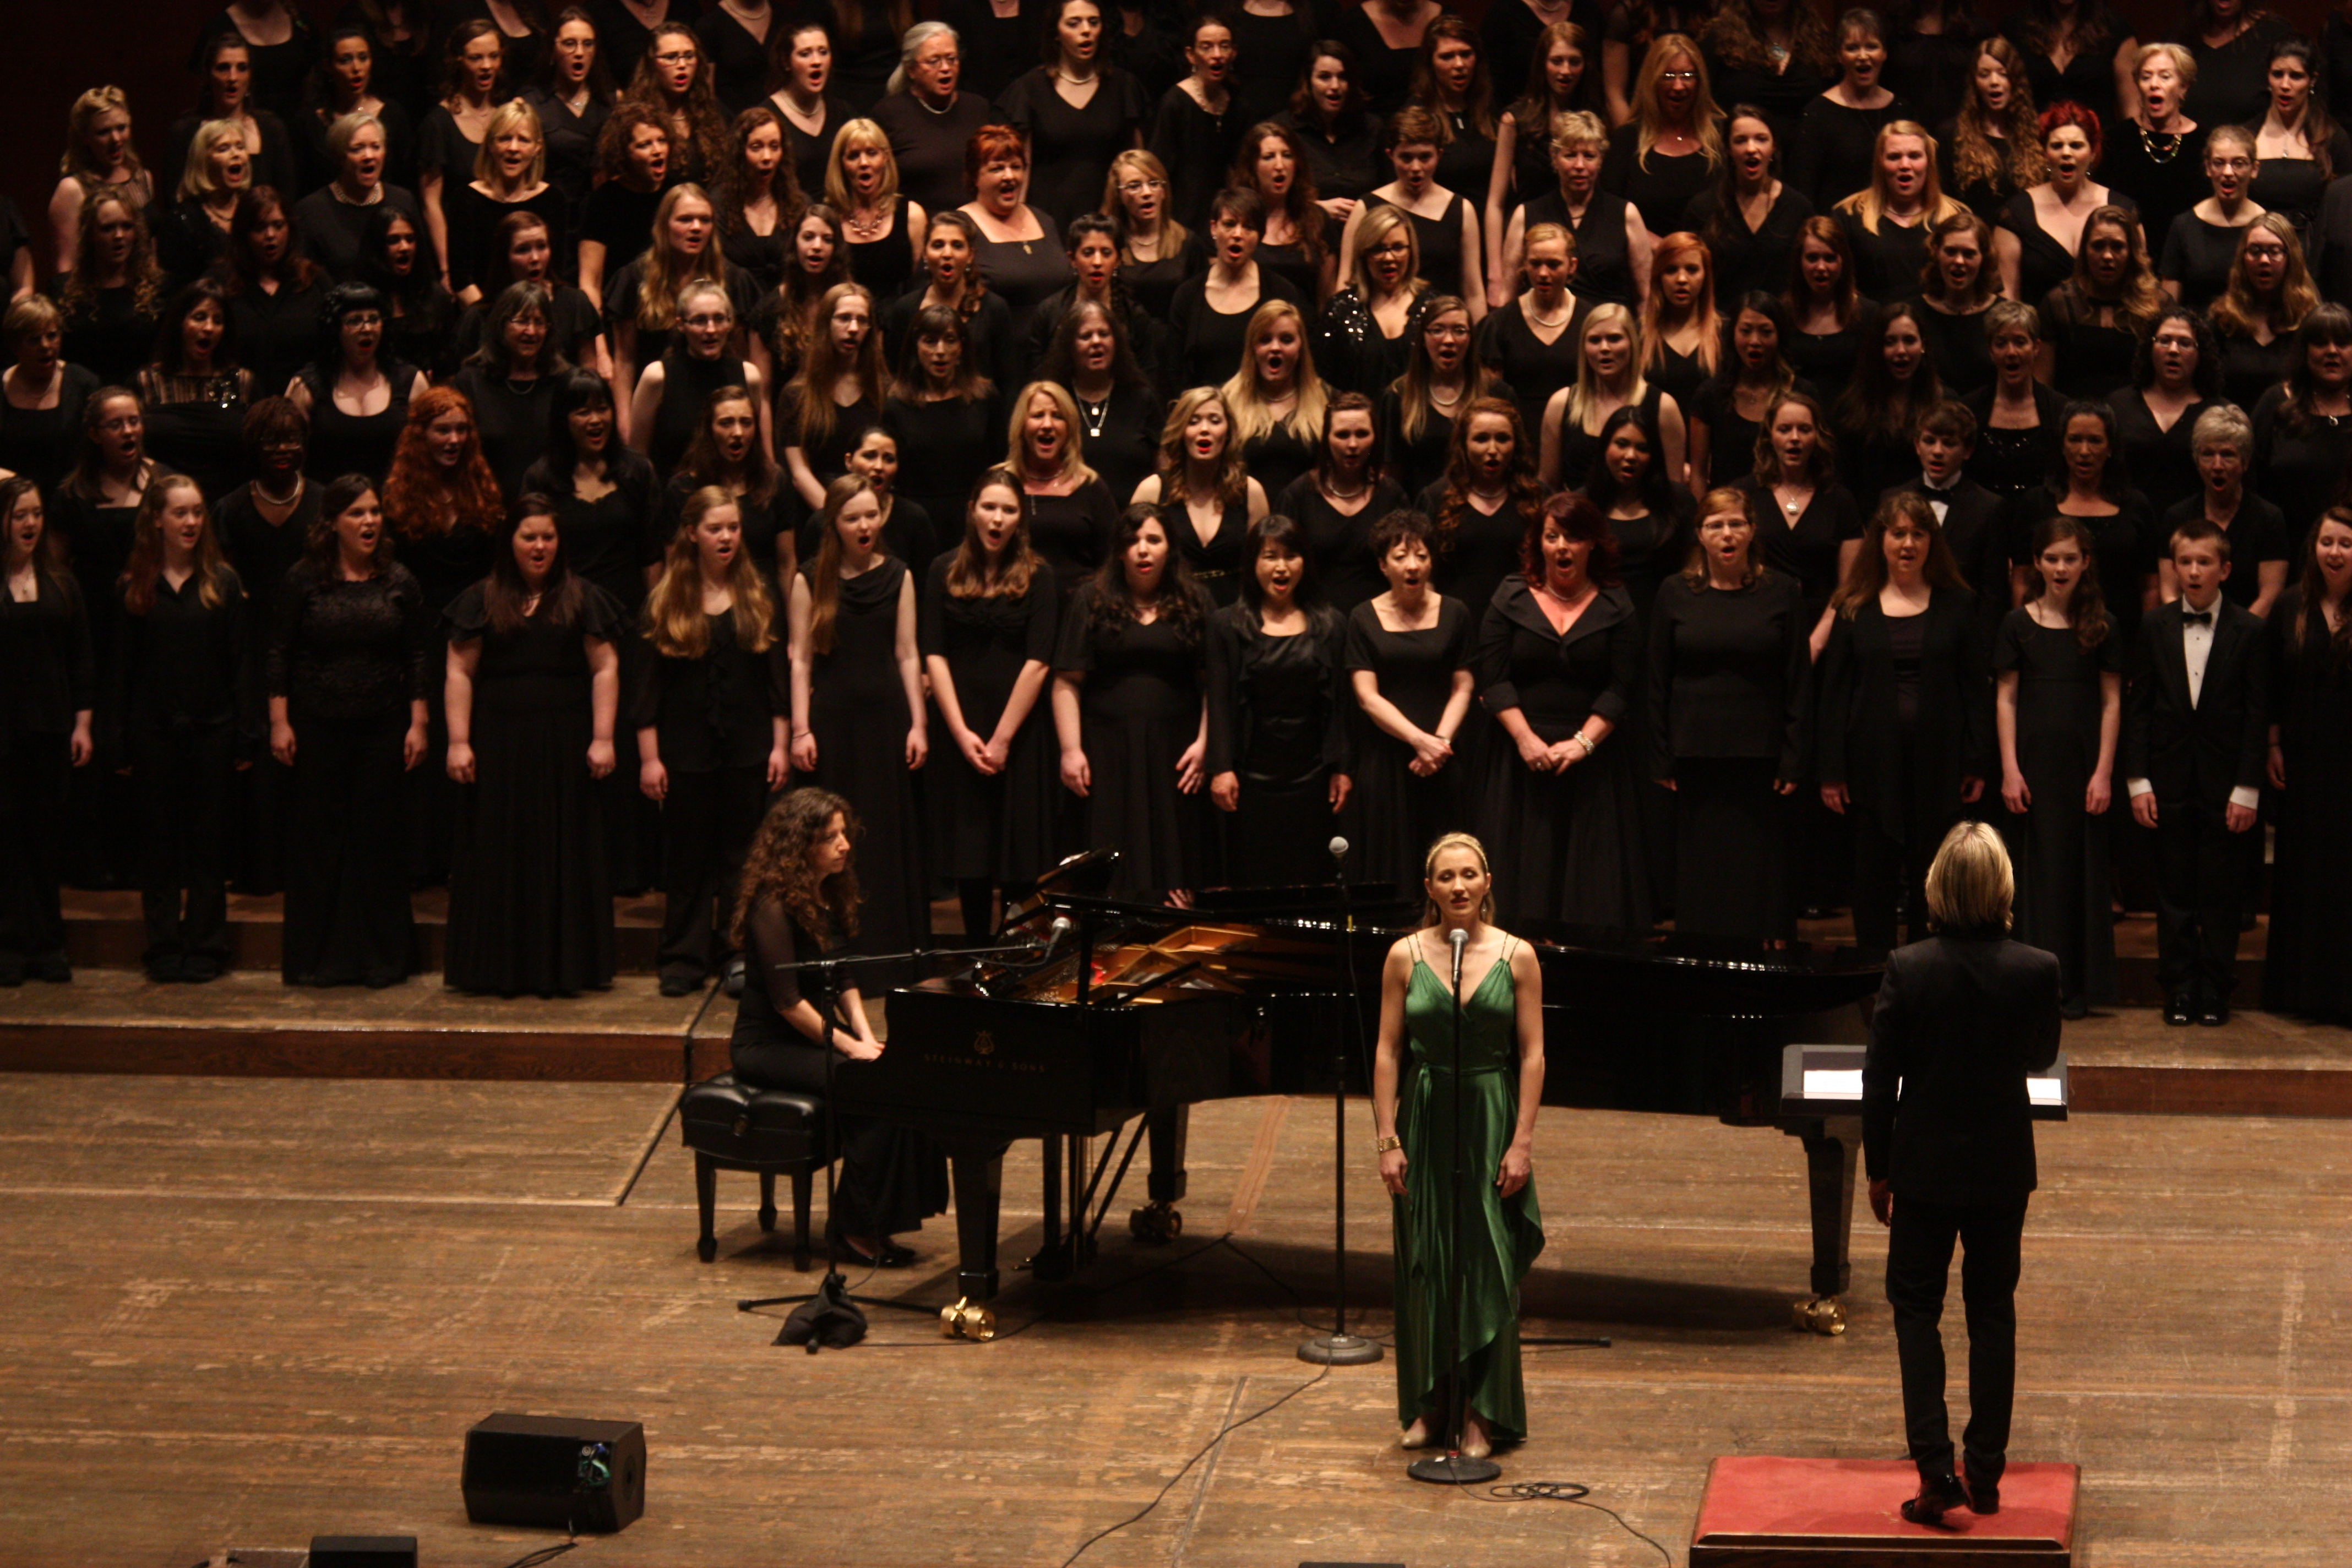 Distinguished Concerts International New York (DCINY) presents: Defying Gravity: The Music of Stephen Schwartz and Eric Whitacre in Review